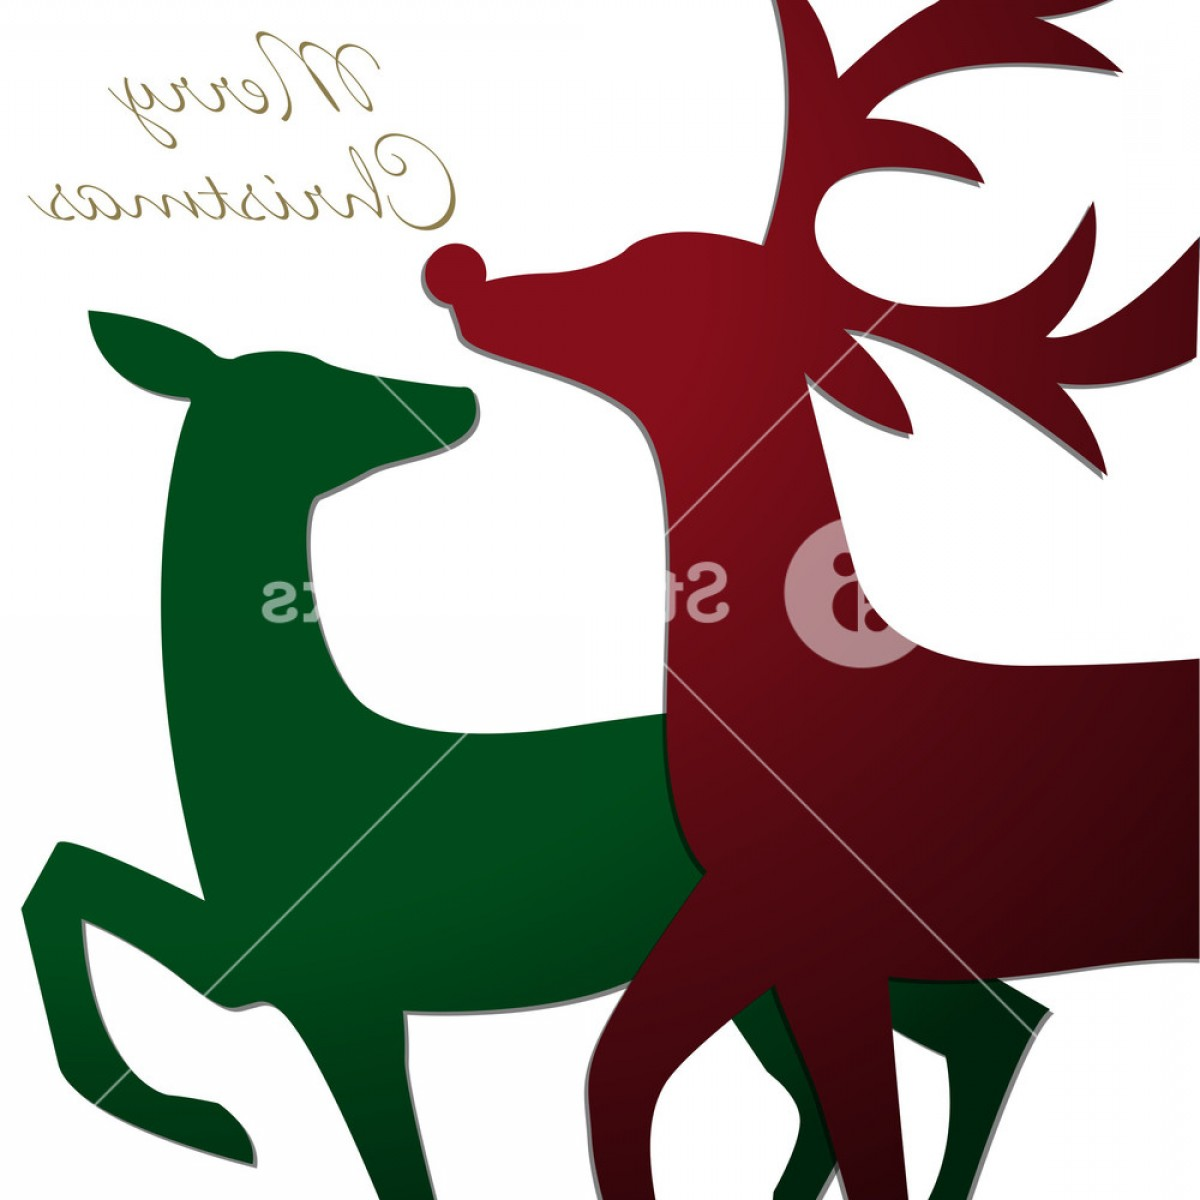 Kissing Reindeer Silhouette Vector: Kissing Reindeer Christmas Card In Vector Format Bqxvzd Jgqjt